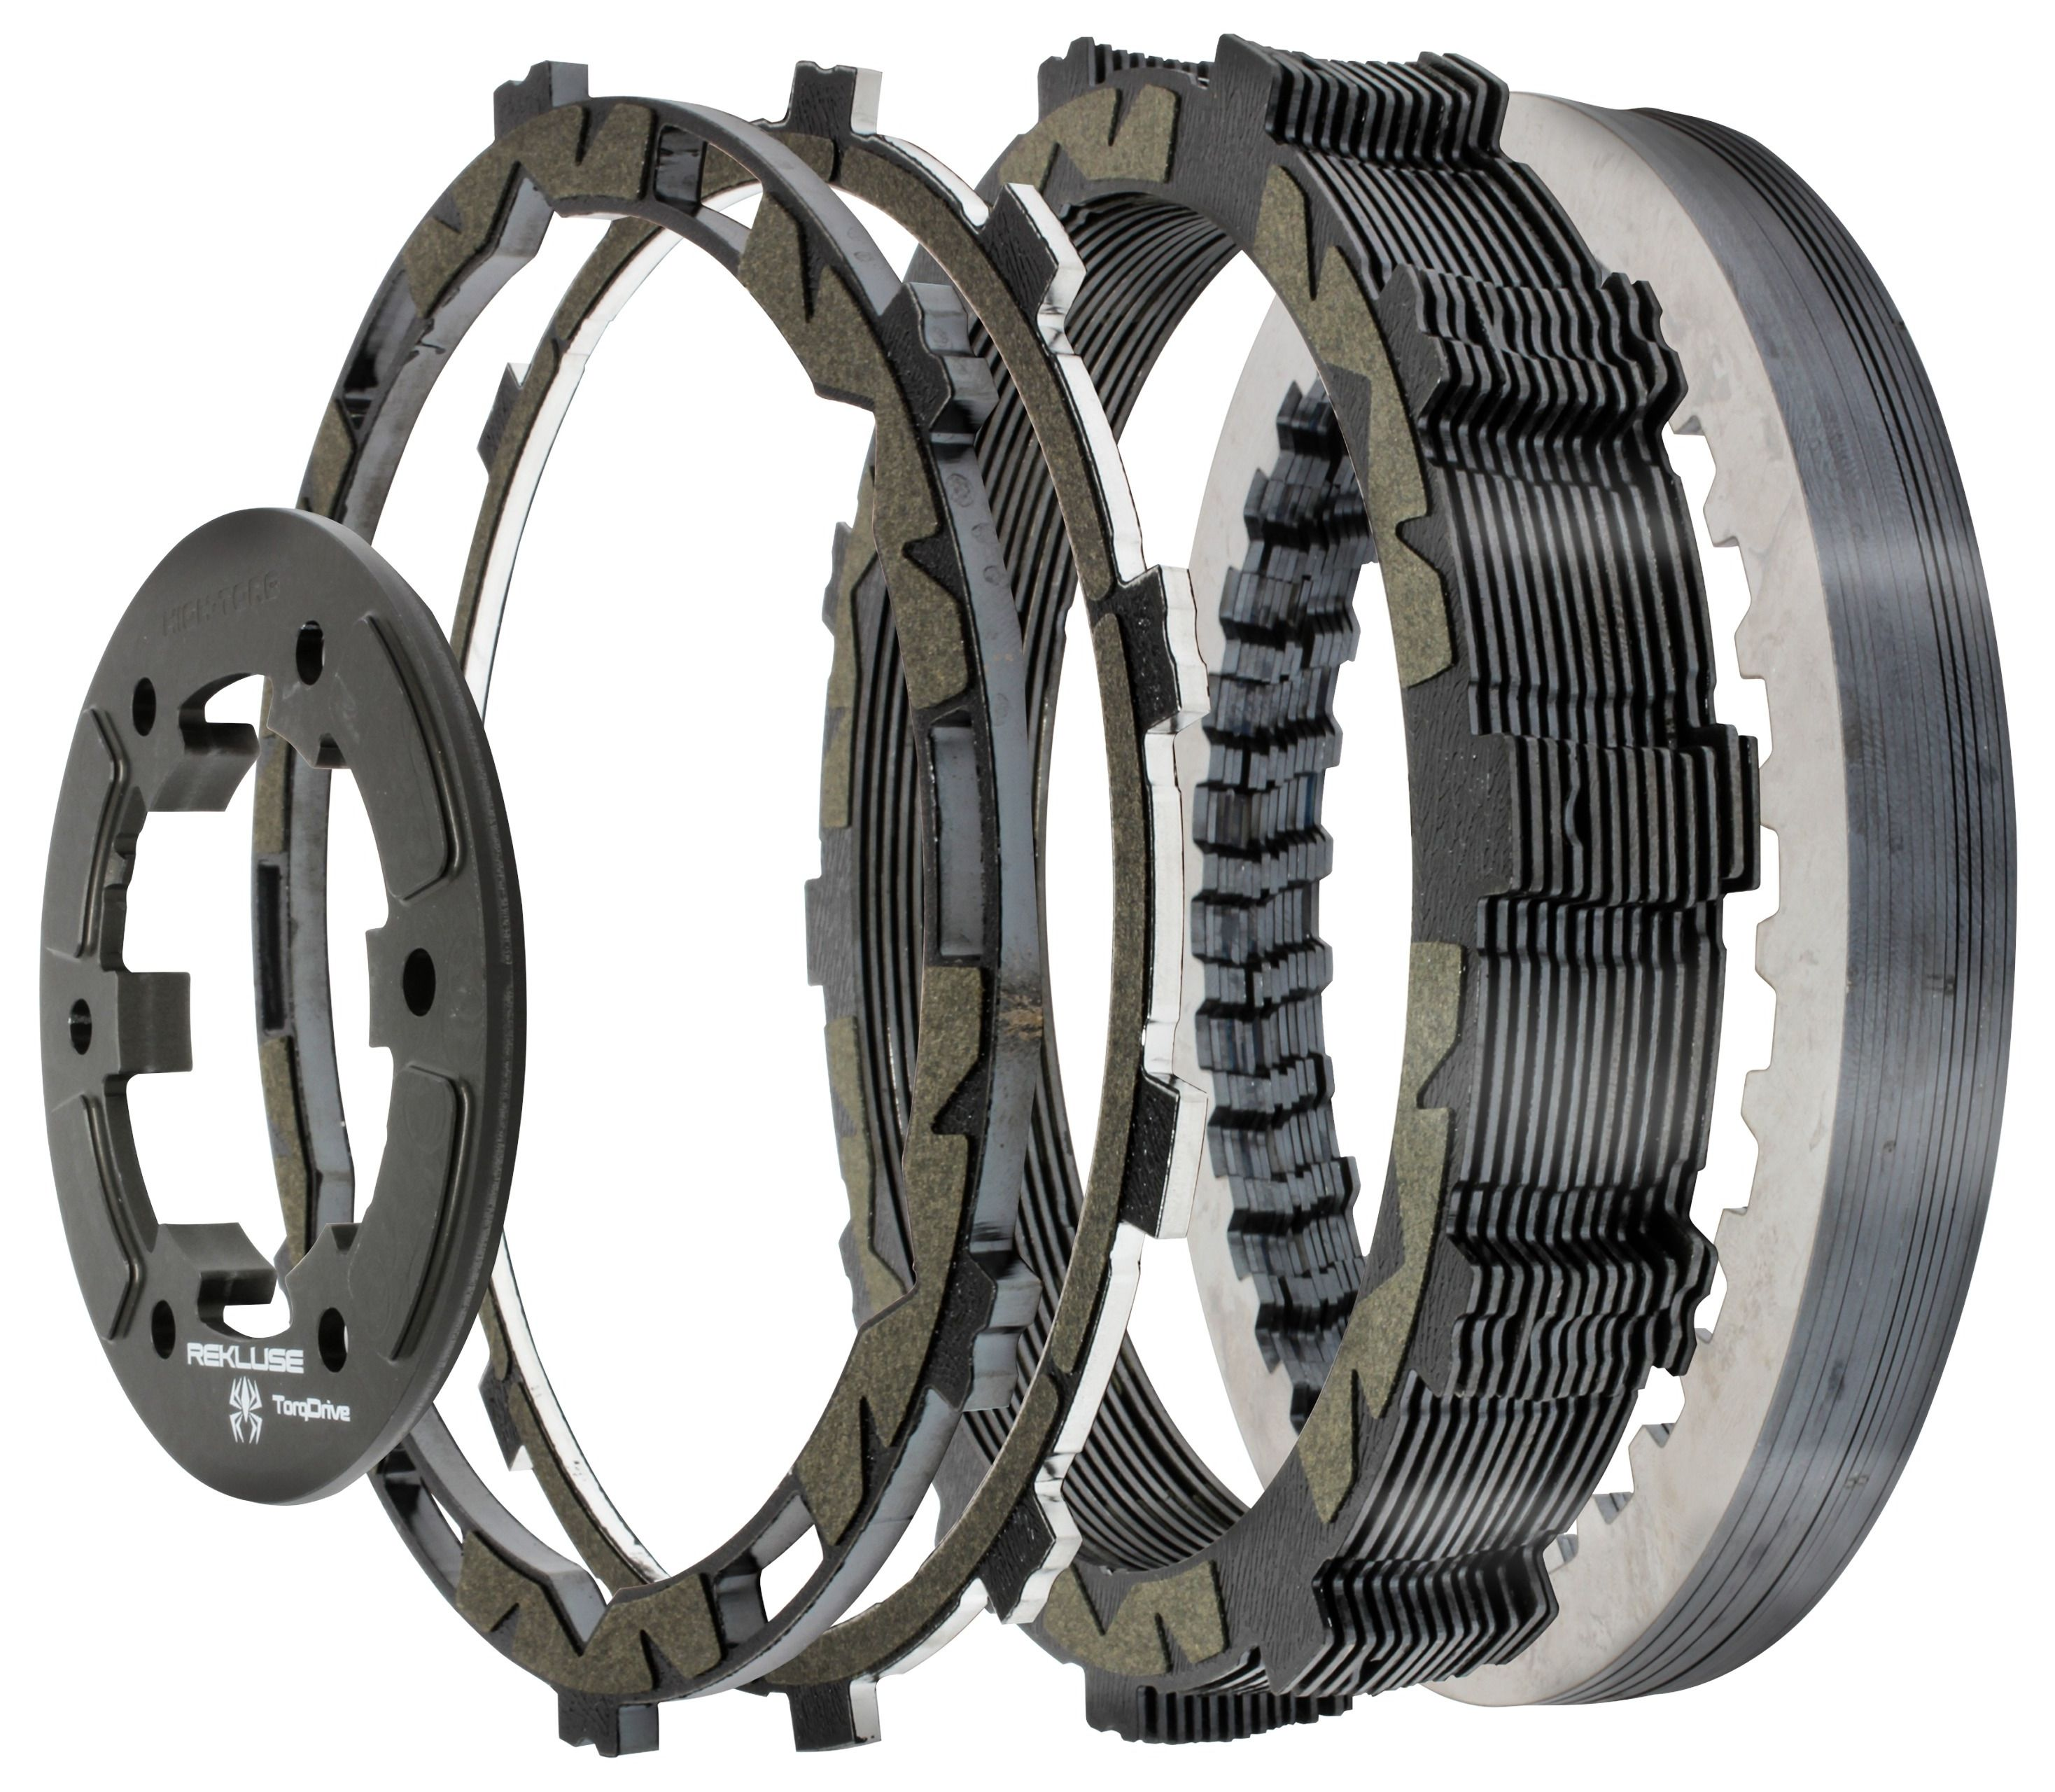 rekluse torq drive clutch kit for harley twin cam - revzilla